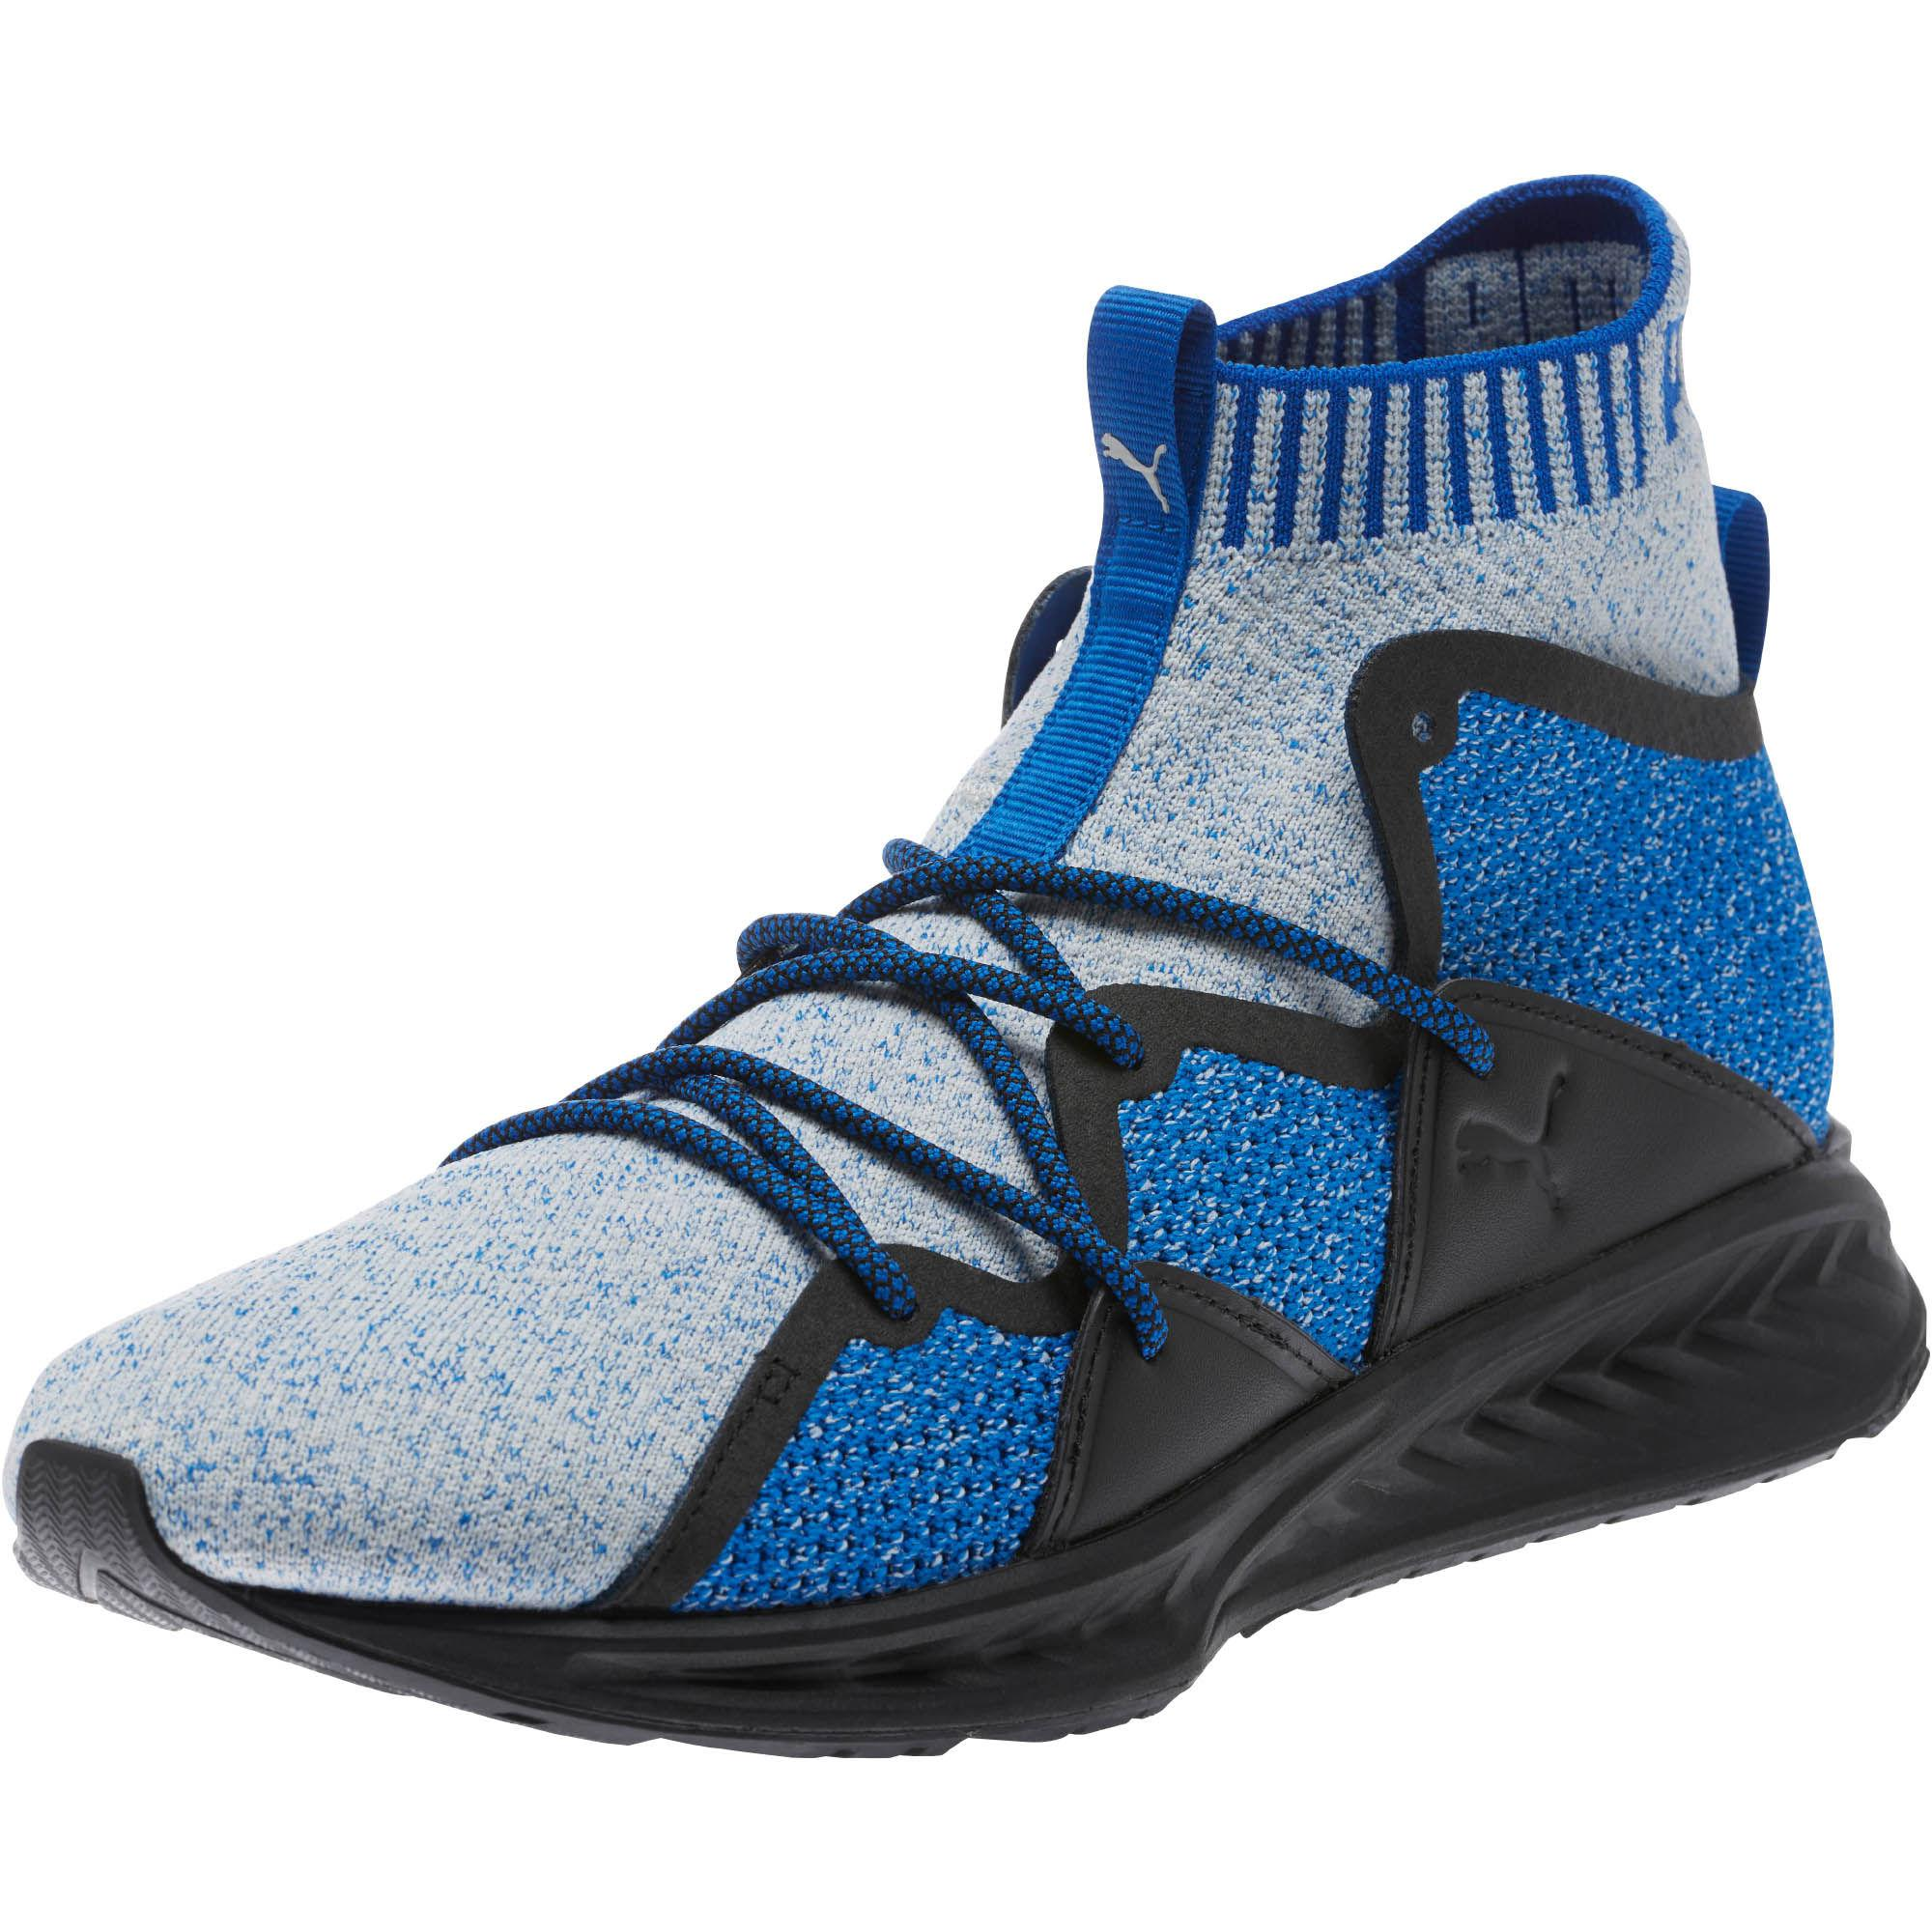 separation shoes fb1c4 bc30b PUMA Ignite Wave Evoknit Training Shoes in Blue for Men - Lyst